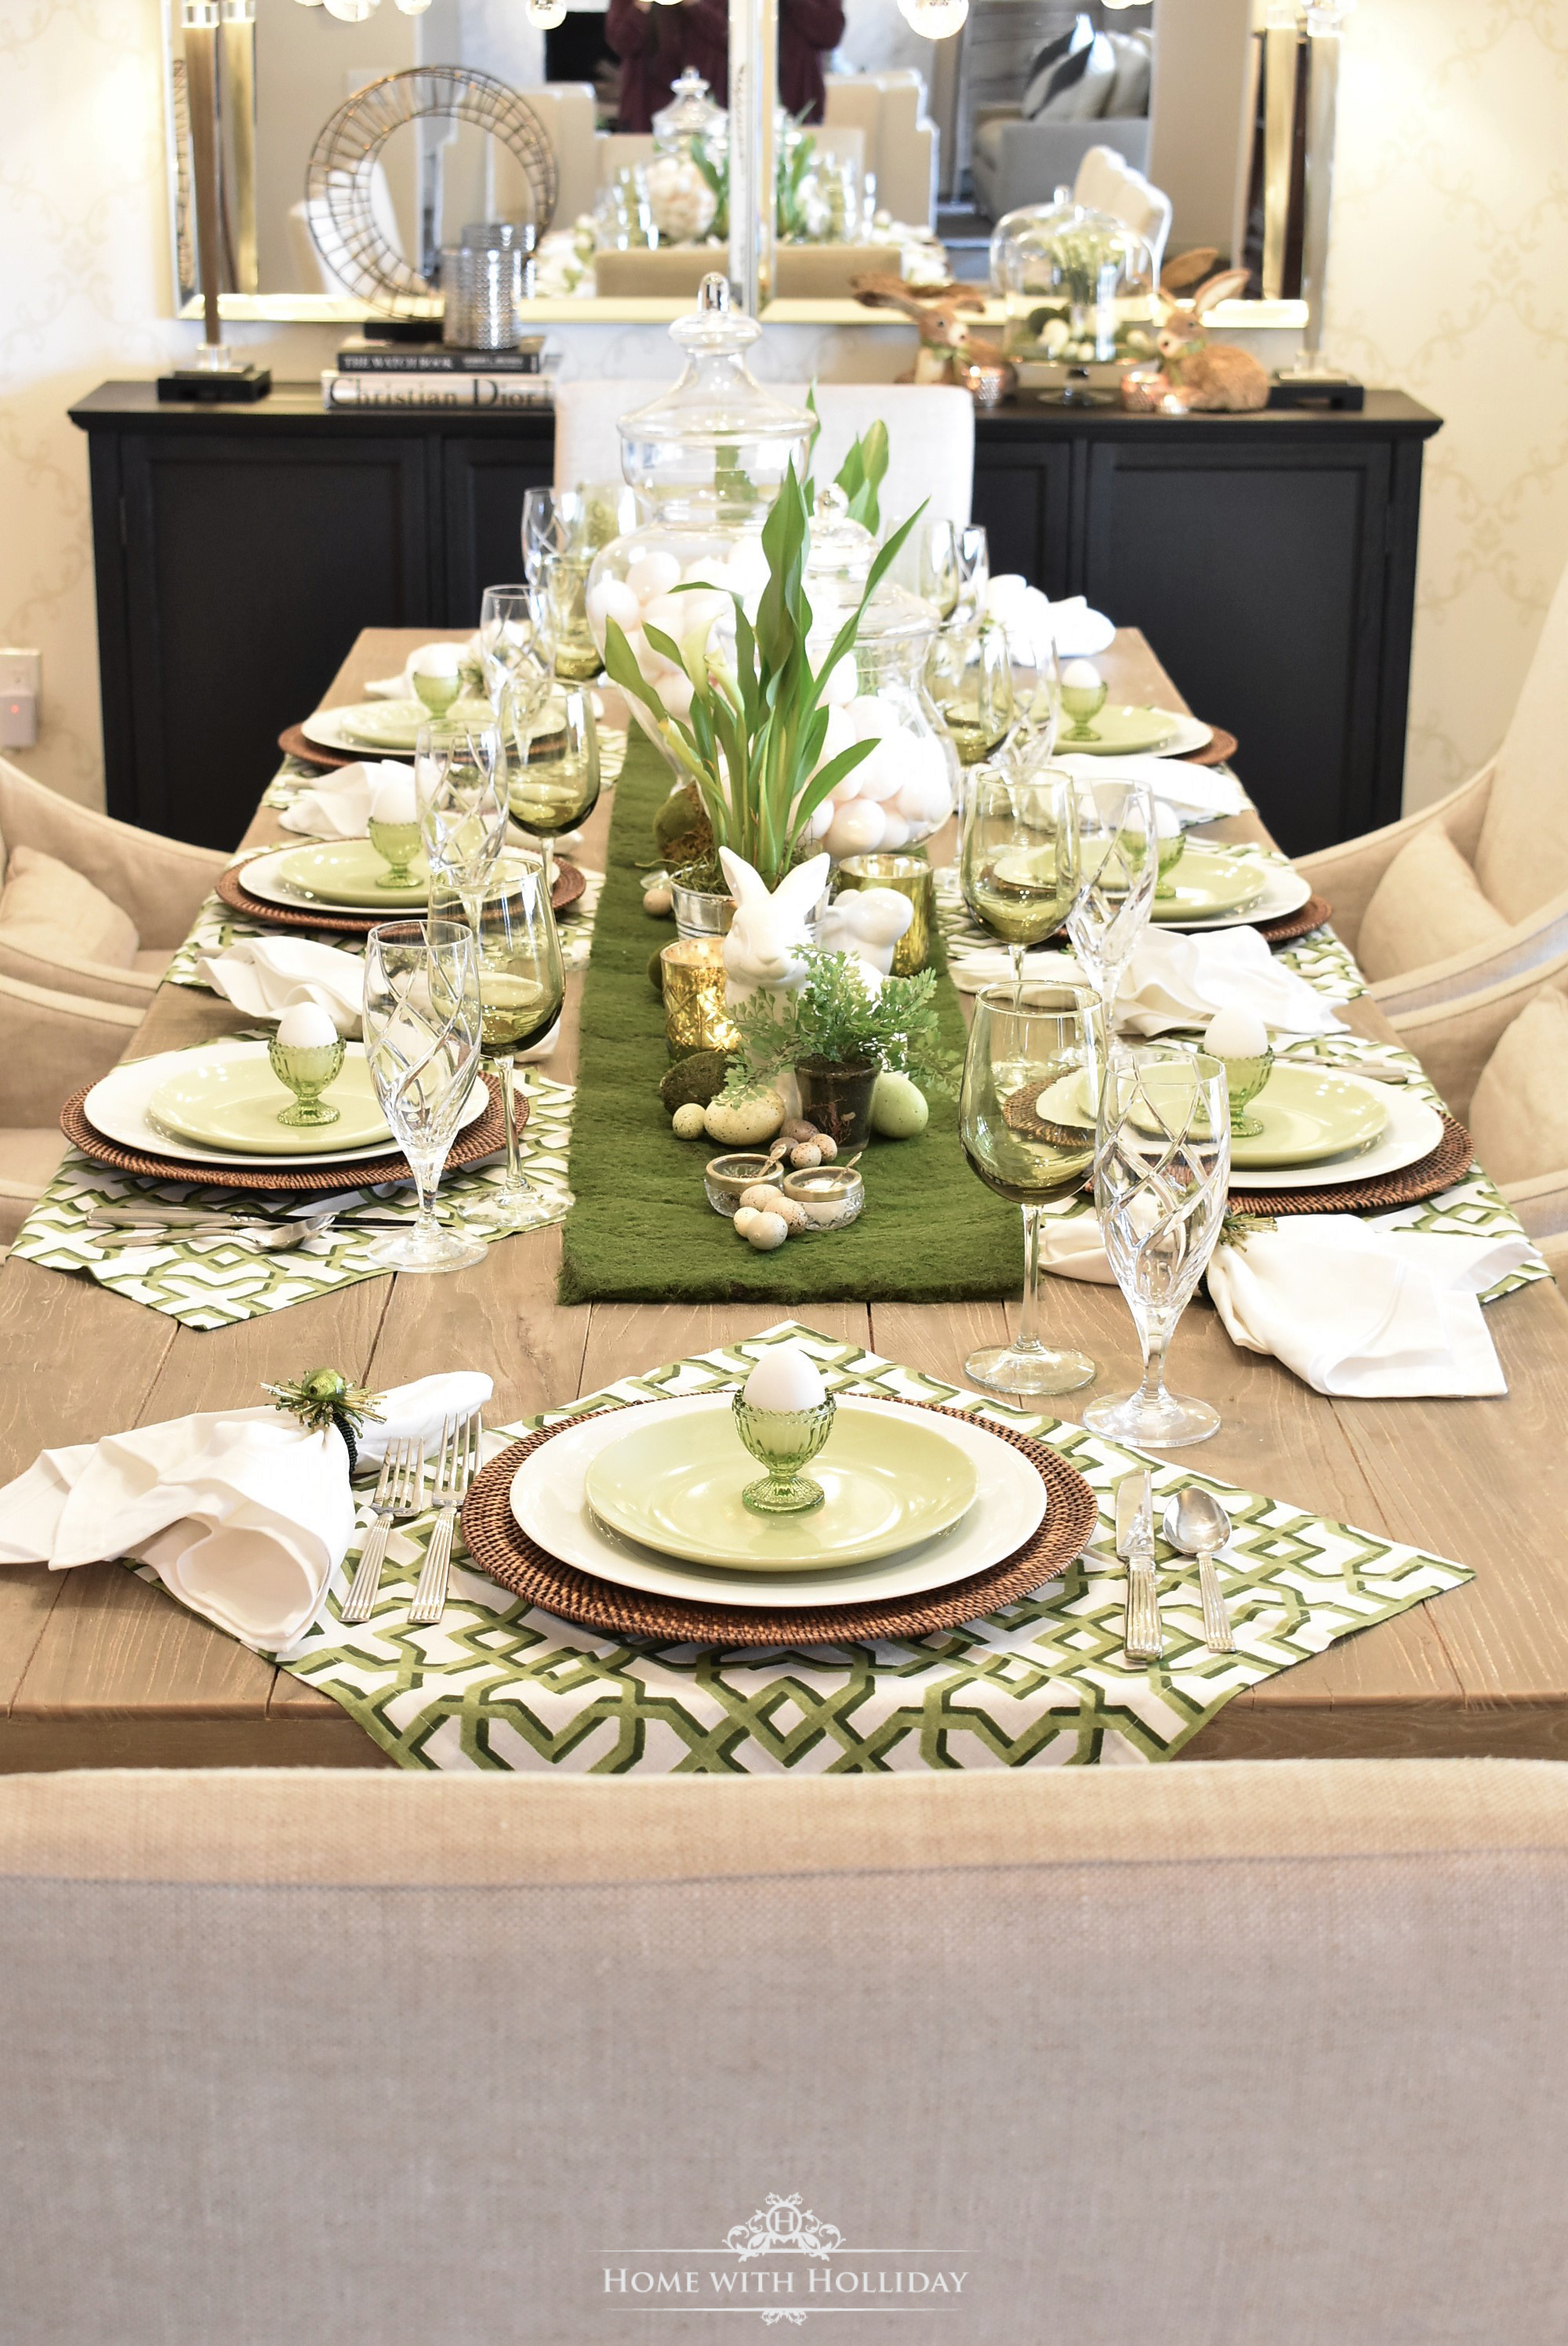 My Top Ten Posts of 2019 - Green and White Easter Table Setting - Home with Holliday